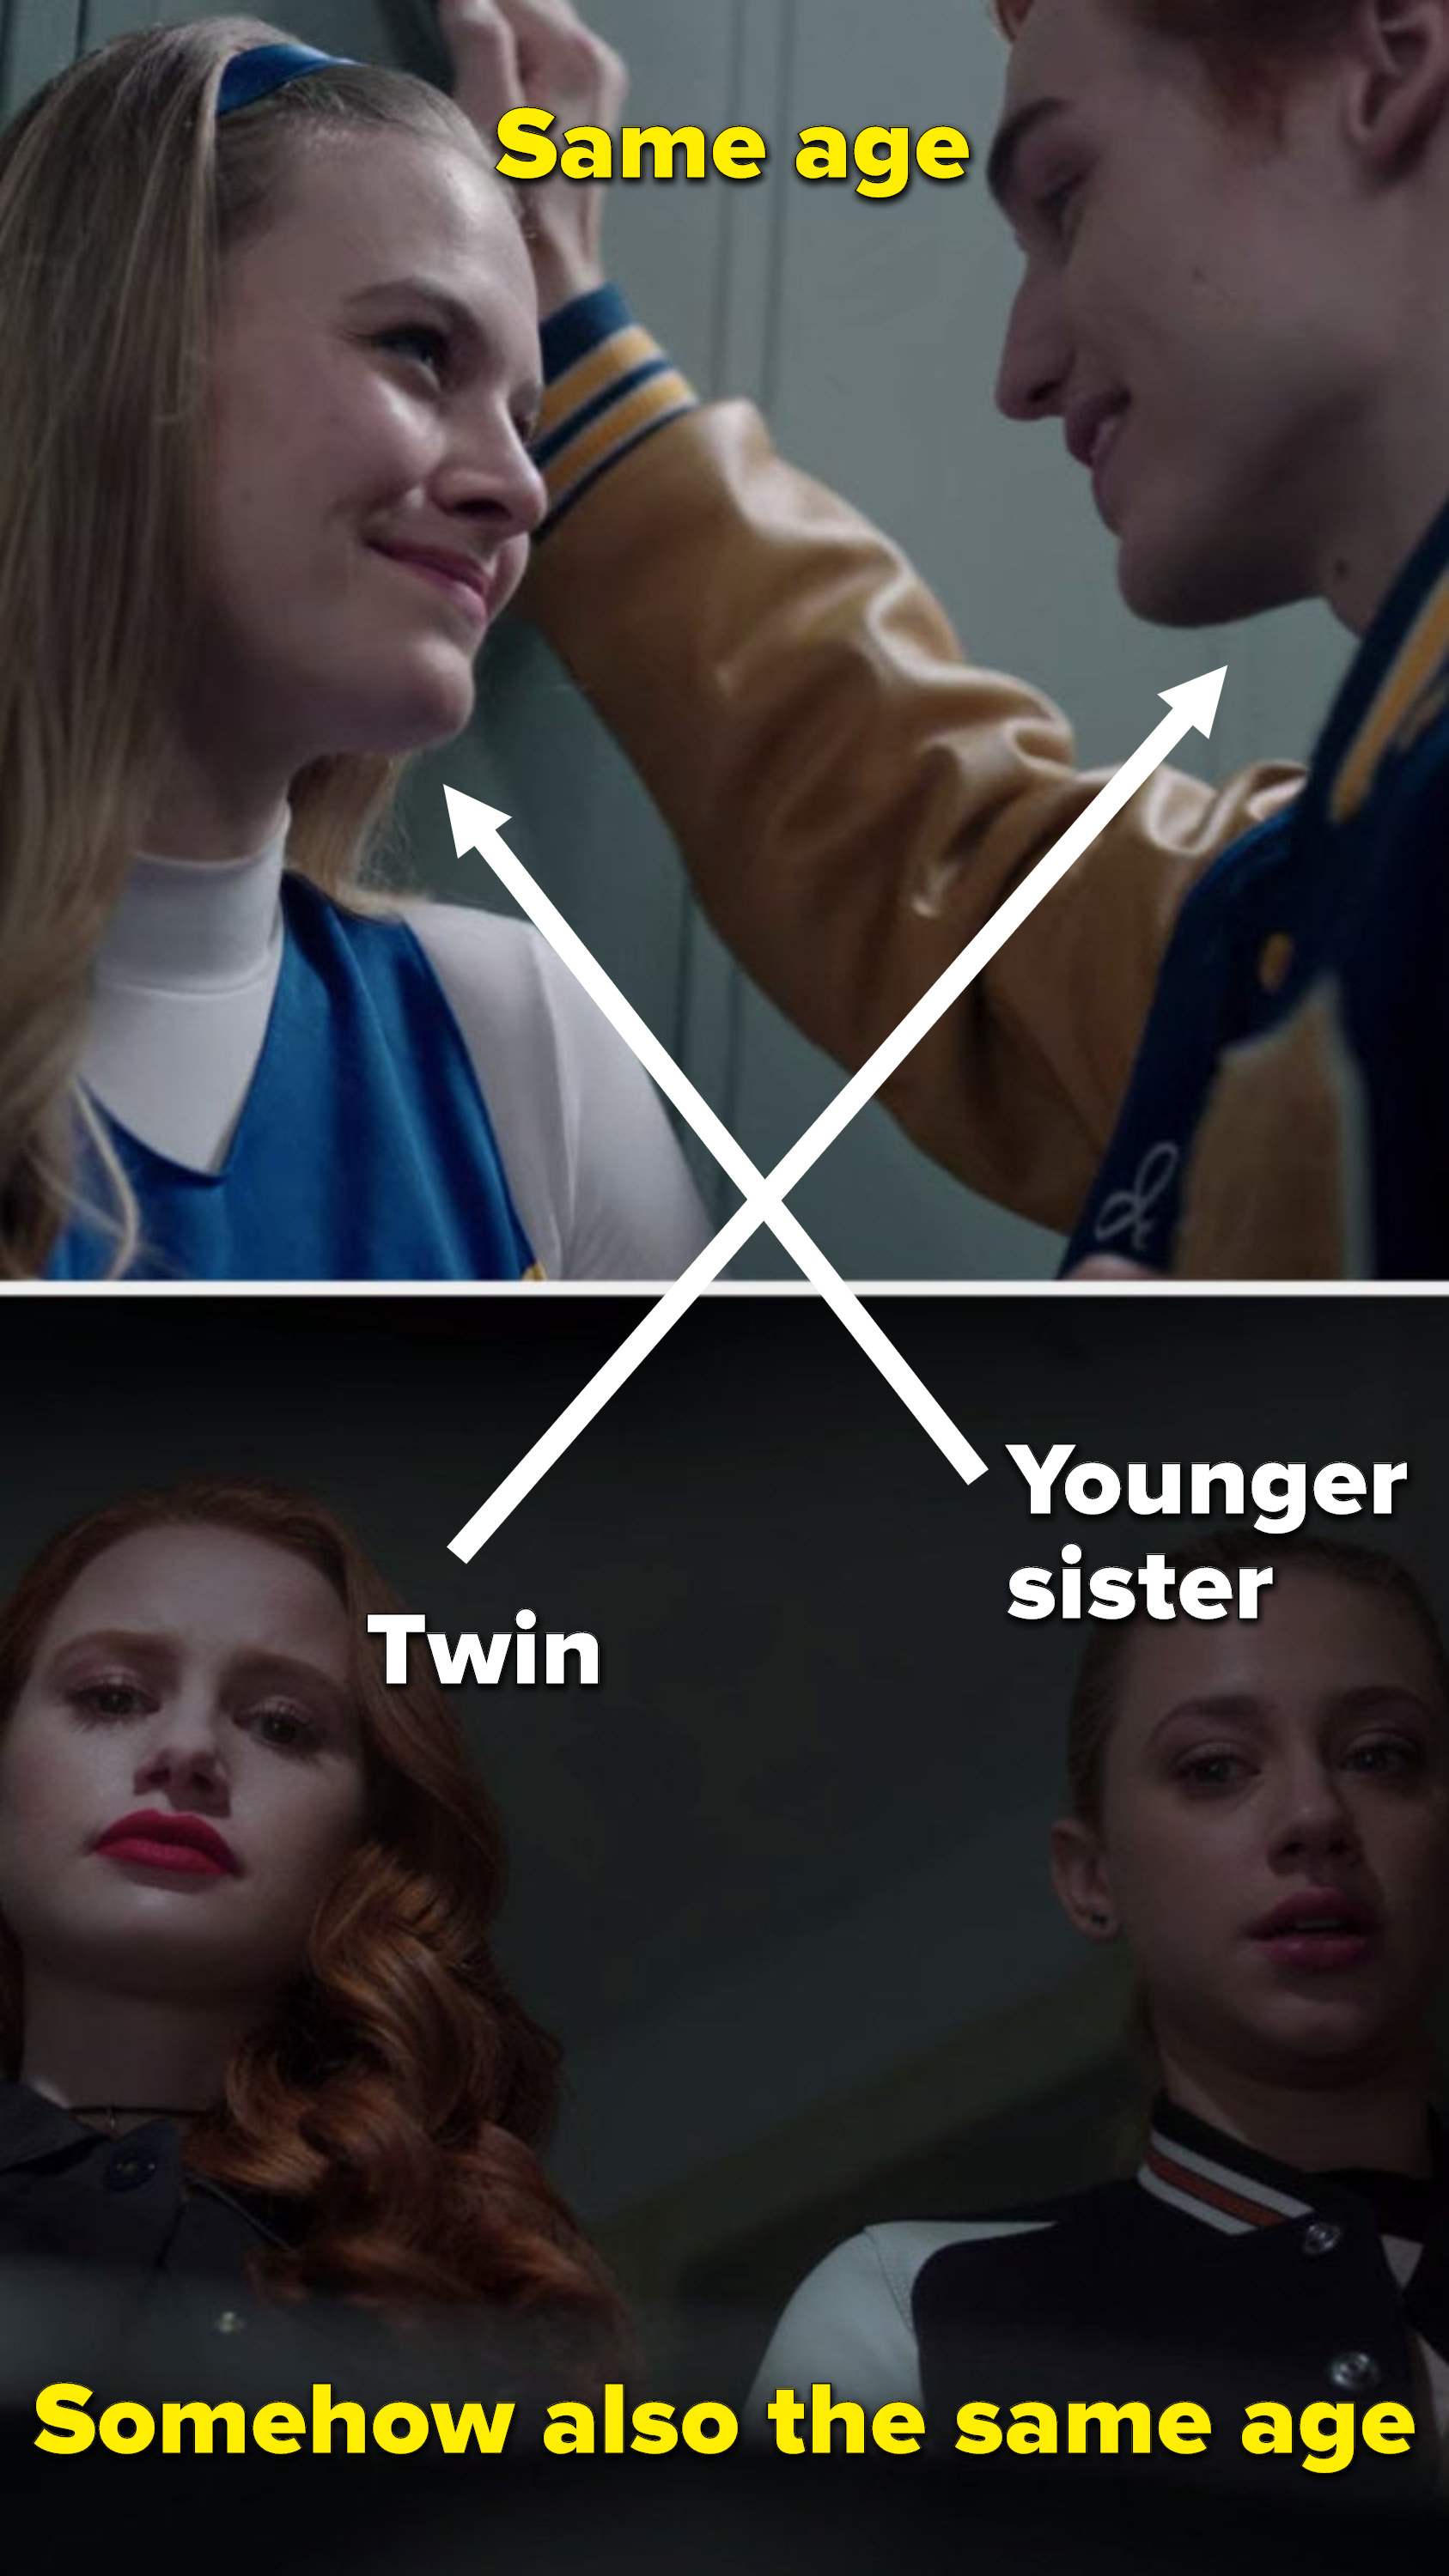 """""""Same age"""" written over Polly and Jason, with arrows pointing Polly to her younger sister Betty and Jason to his twin Cheryl, but """"Somehow also the same age"""" is written over Cheryl and Betty"""